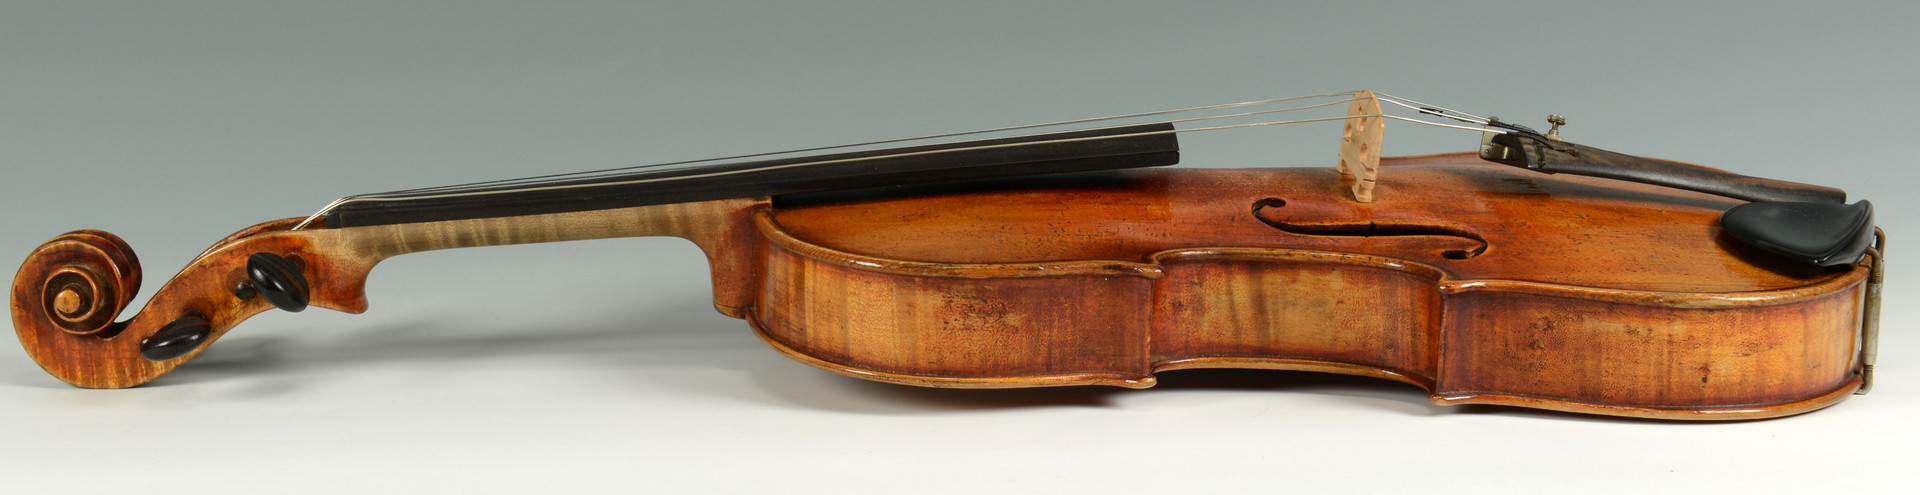 Lot 725: 19th c. German Violin w/ bow